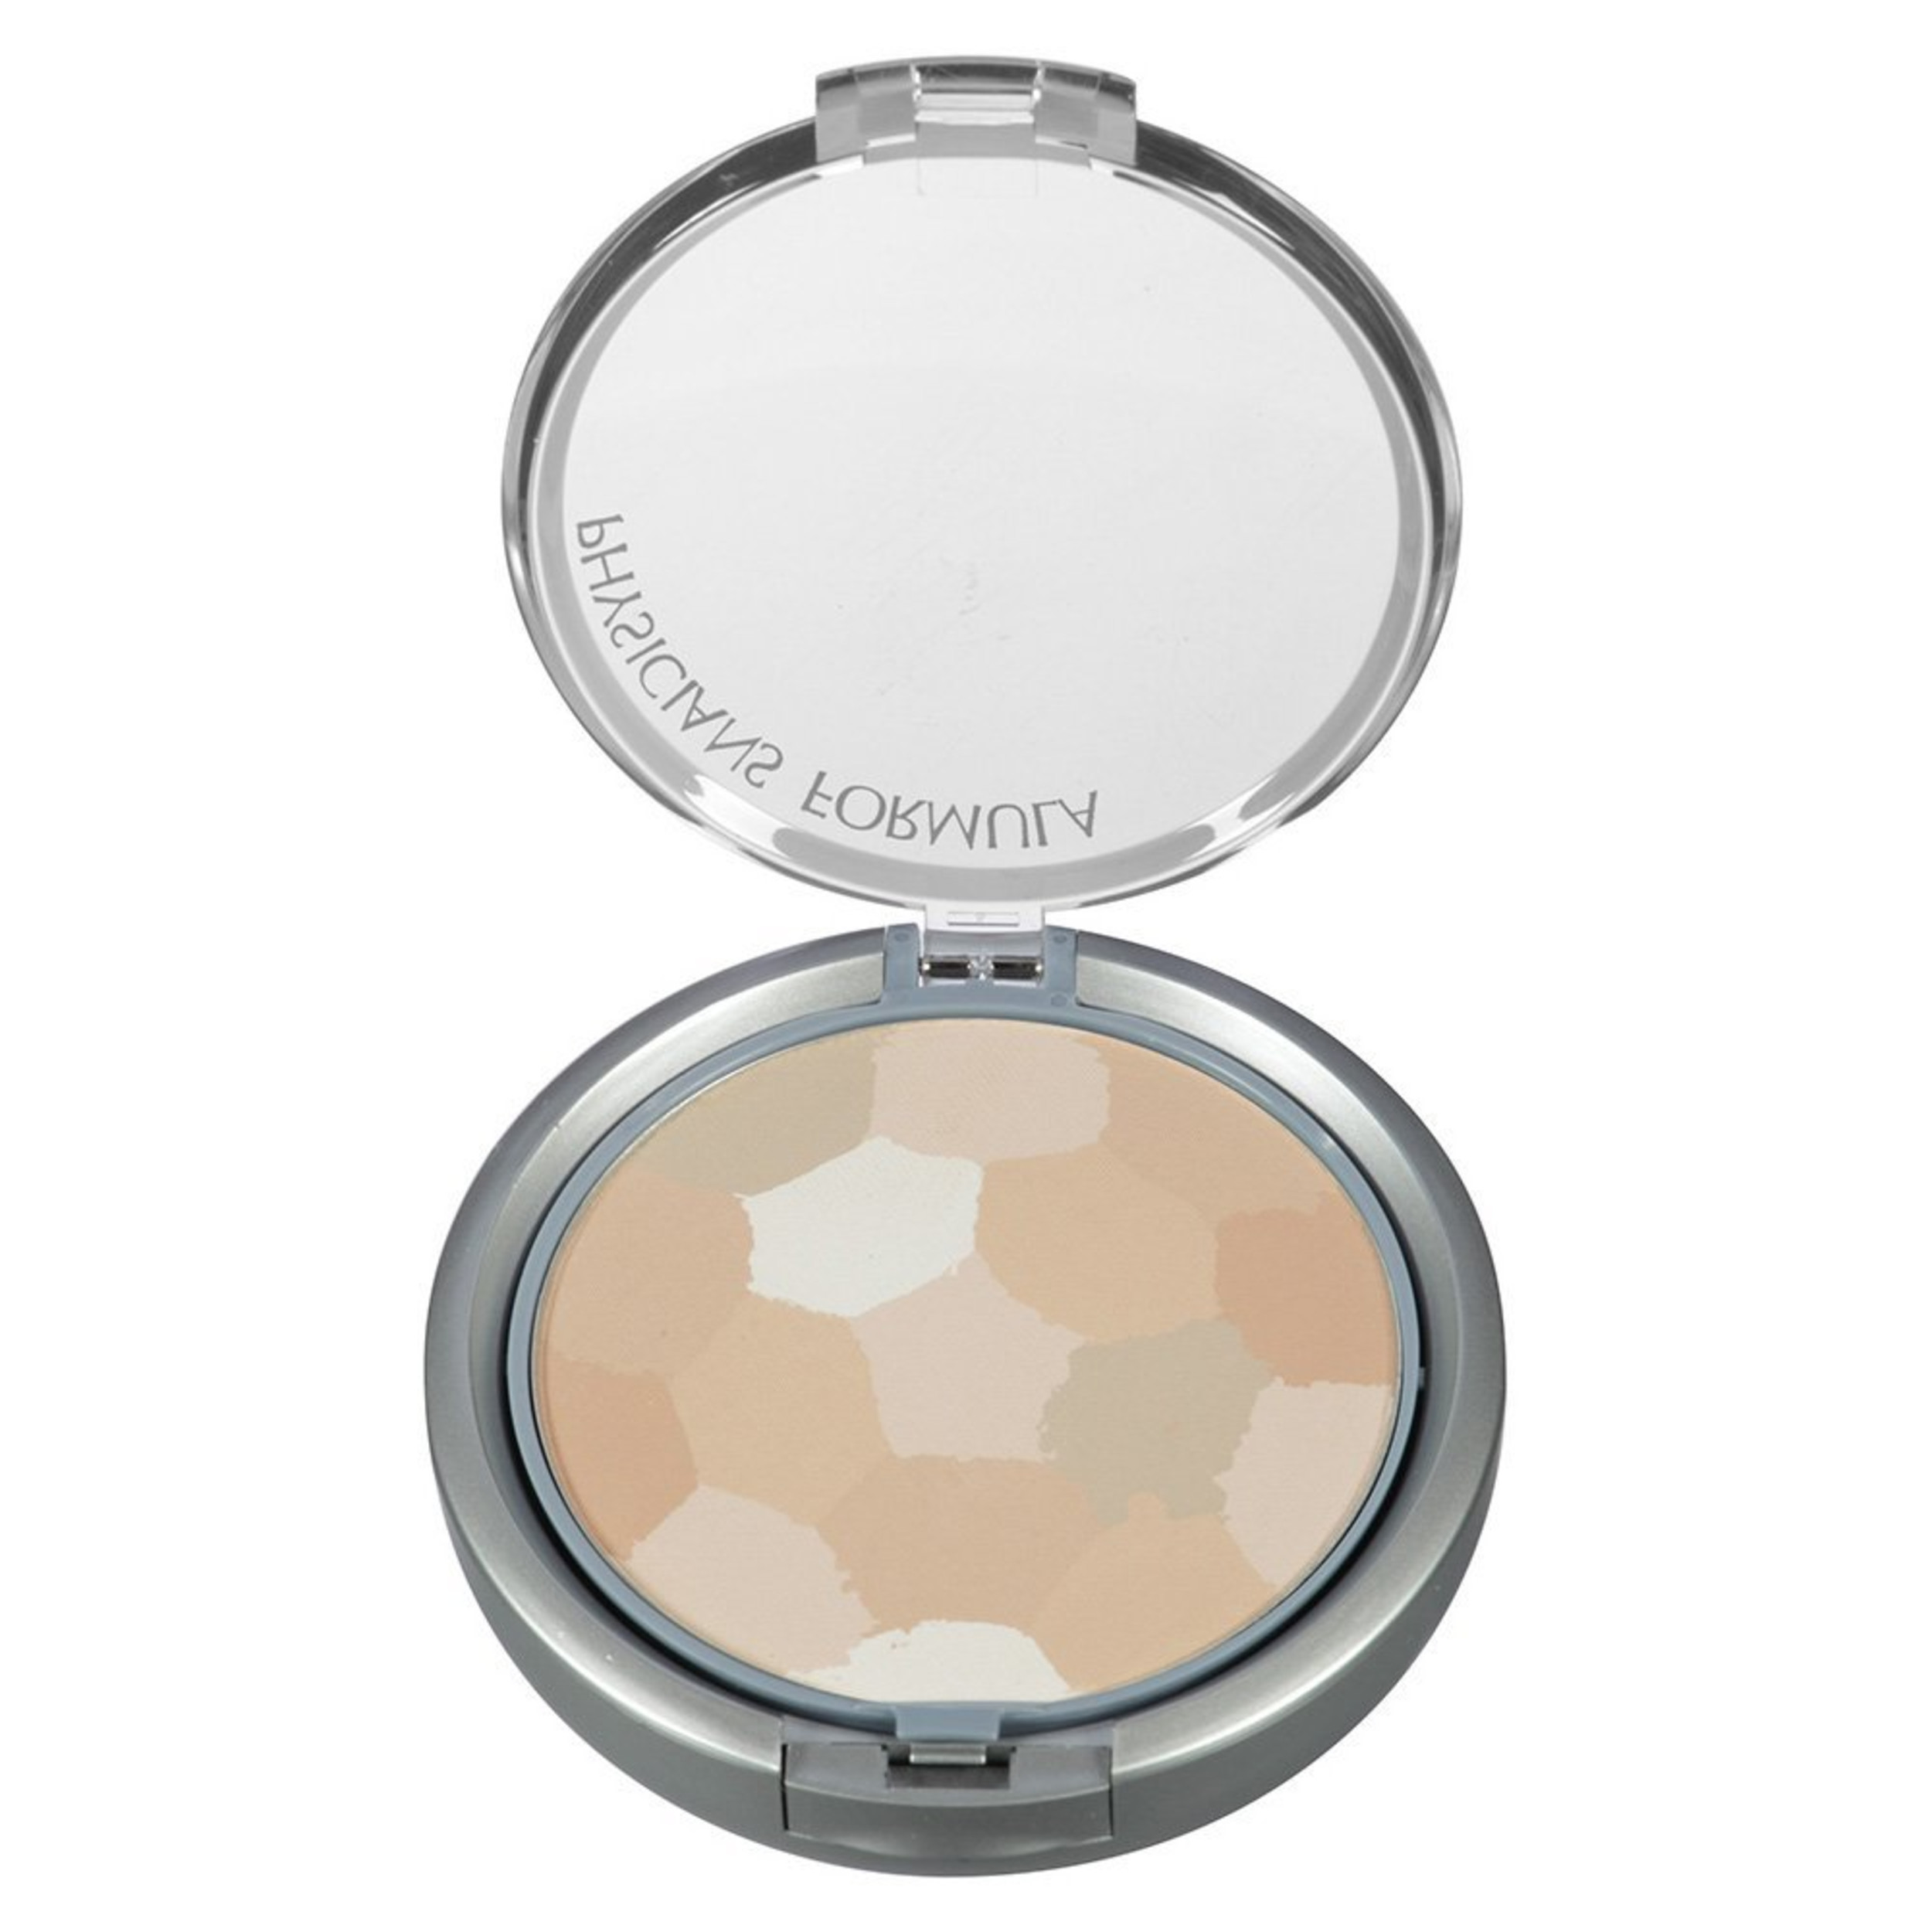 Physicians Formula Powder Palette Color Corrective Powders Multi-Color Pressed Powder, Translucent